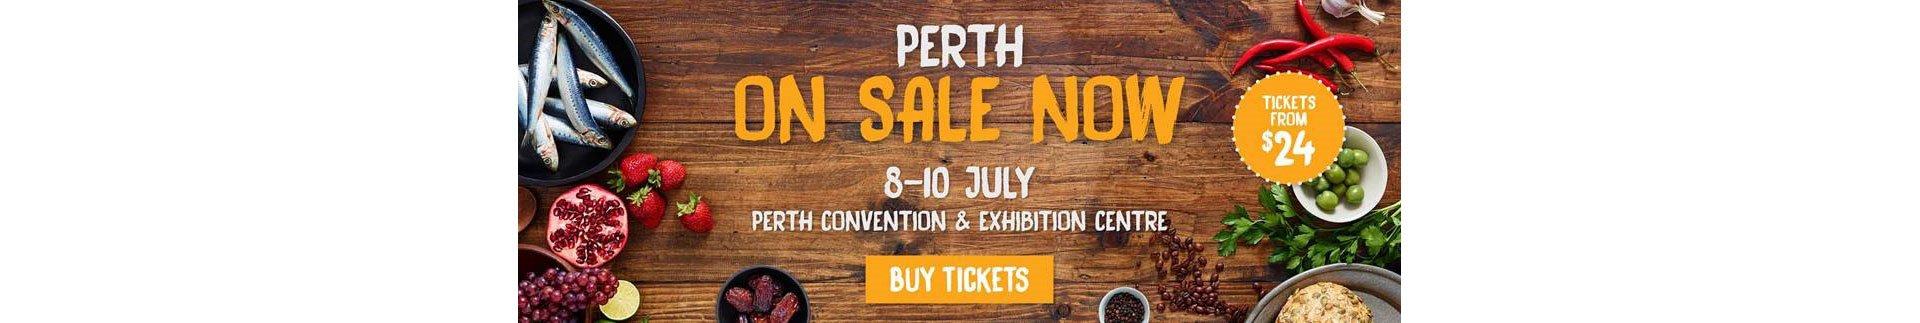 Good Food Wine Show 2016 Perth